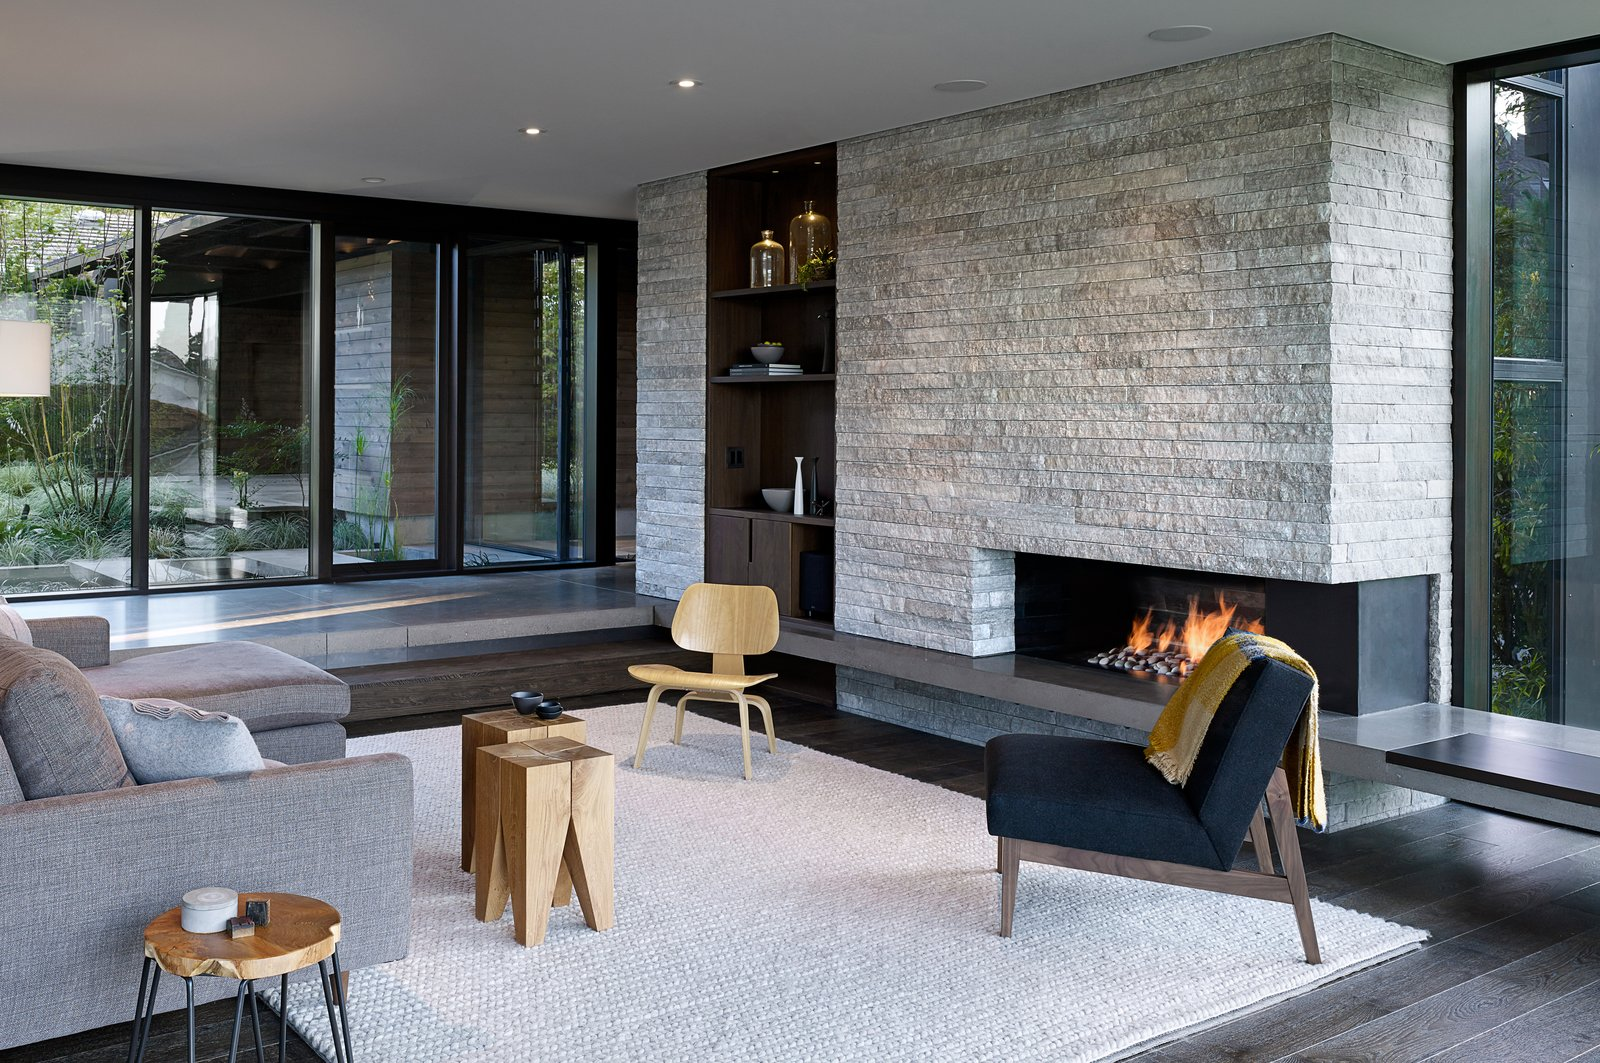 Laurelhurst Residence Tagged: Living Room, Chair, Ceiling Lighting, Standard Layout Fireplace, Stools, and Recessed Lighting.  Laurelhurst Residence by mw works